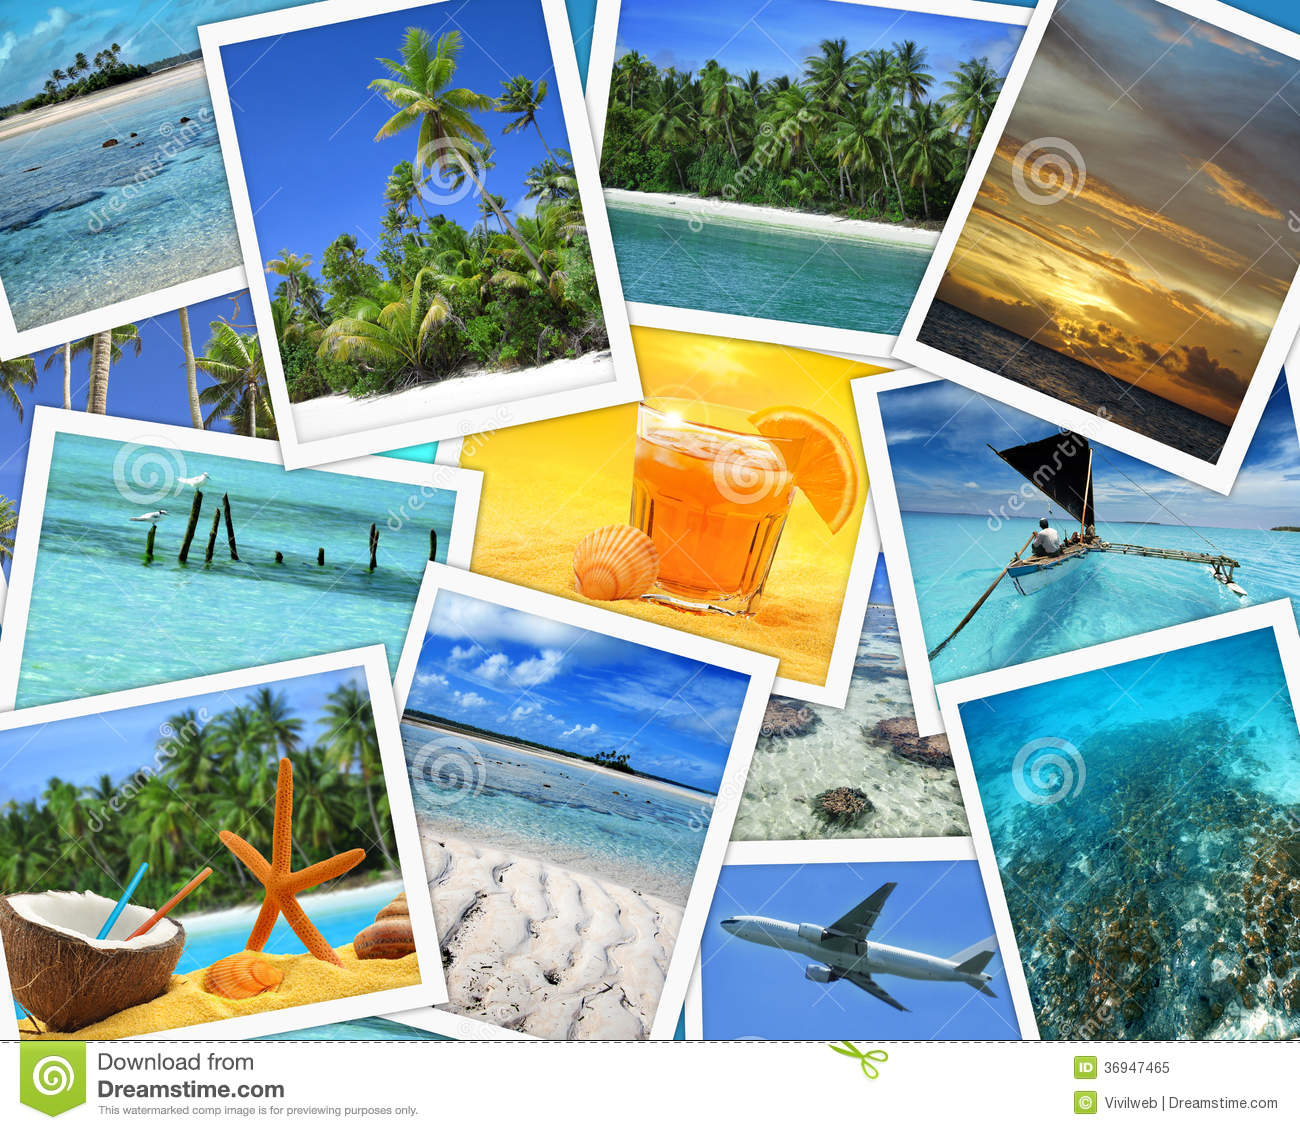 Collage of snapshots of tropical travel destinations.